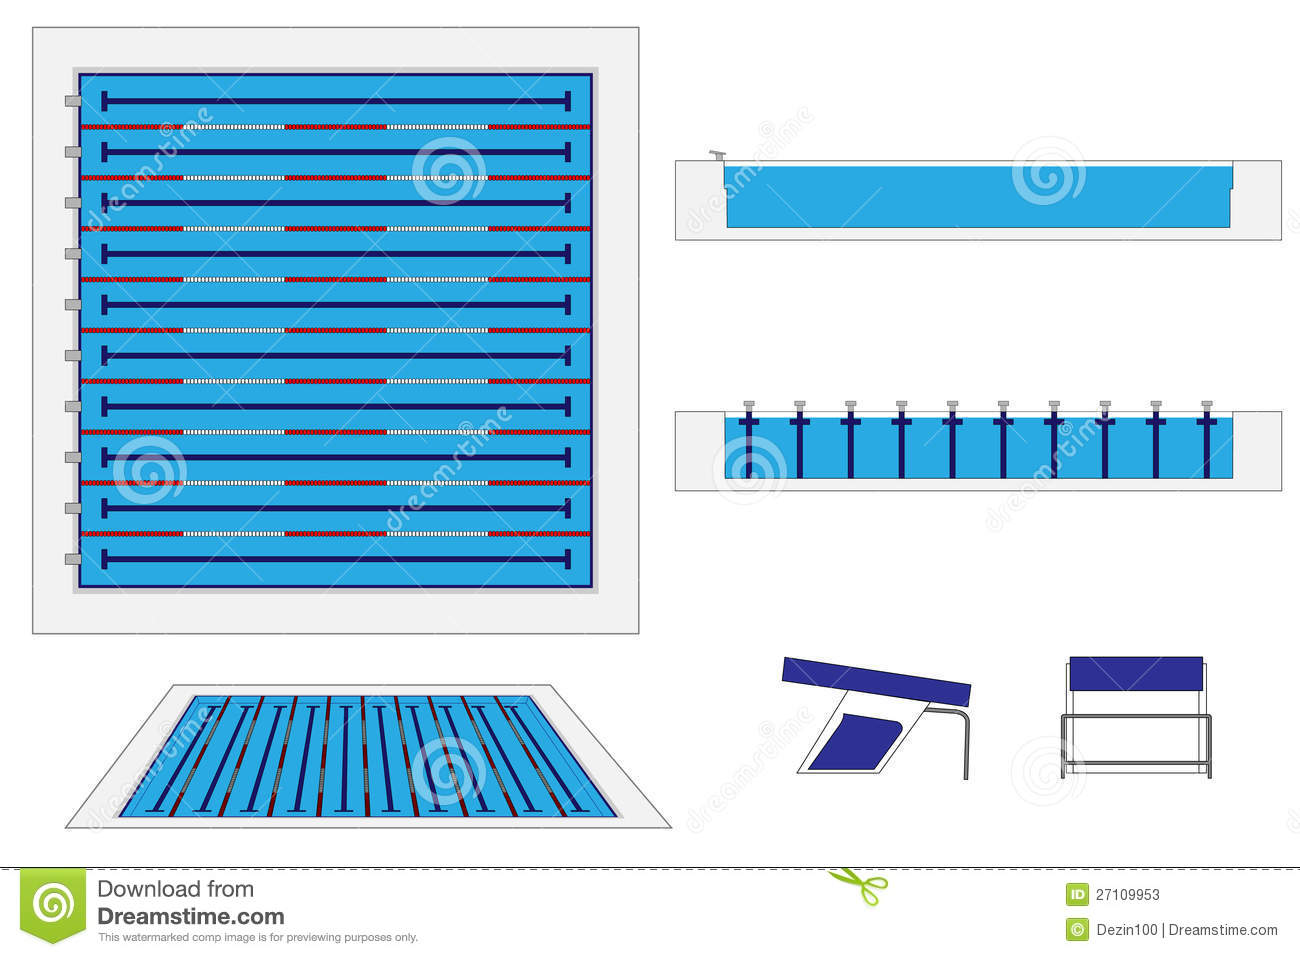 Olympic Swimming Pool Diagram modren olympic swimming pool top view compete in the breastroke at